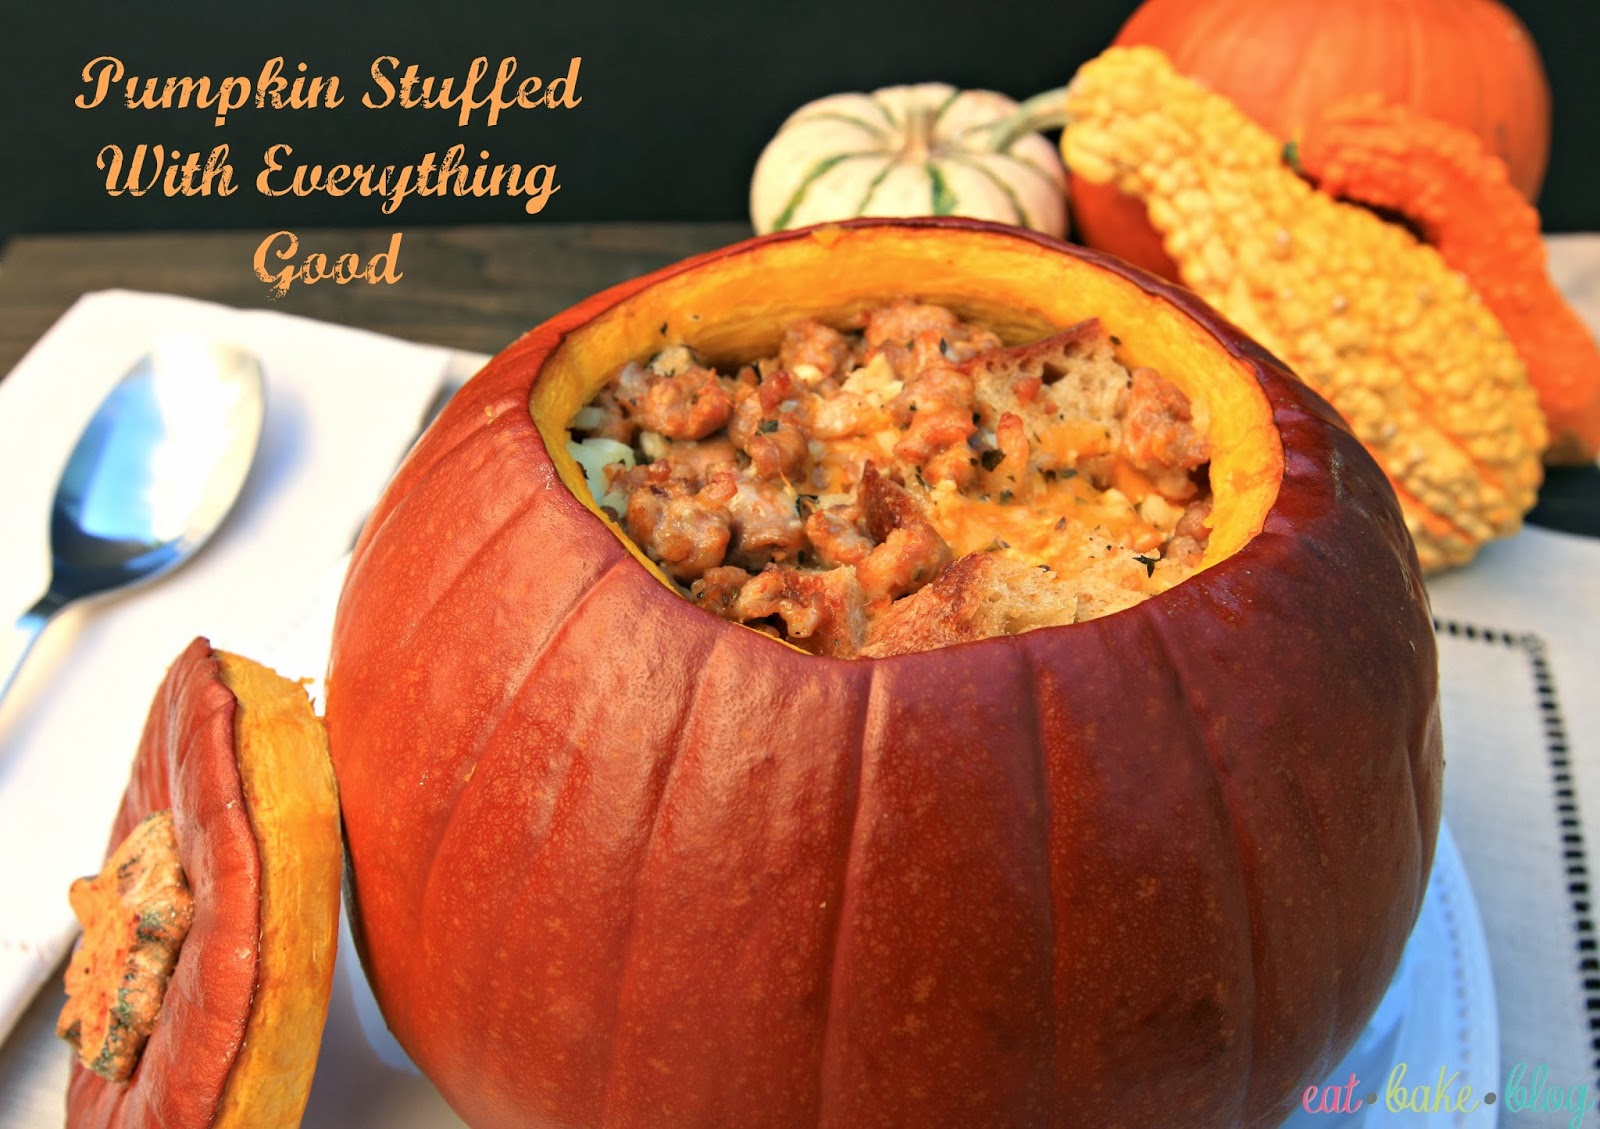 stuffed pumpkin recipe best stuffed pumpkin bread pudding casserole